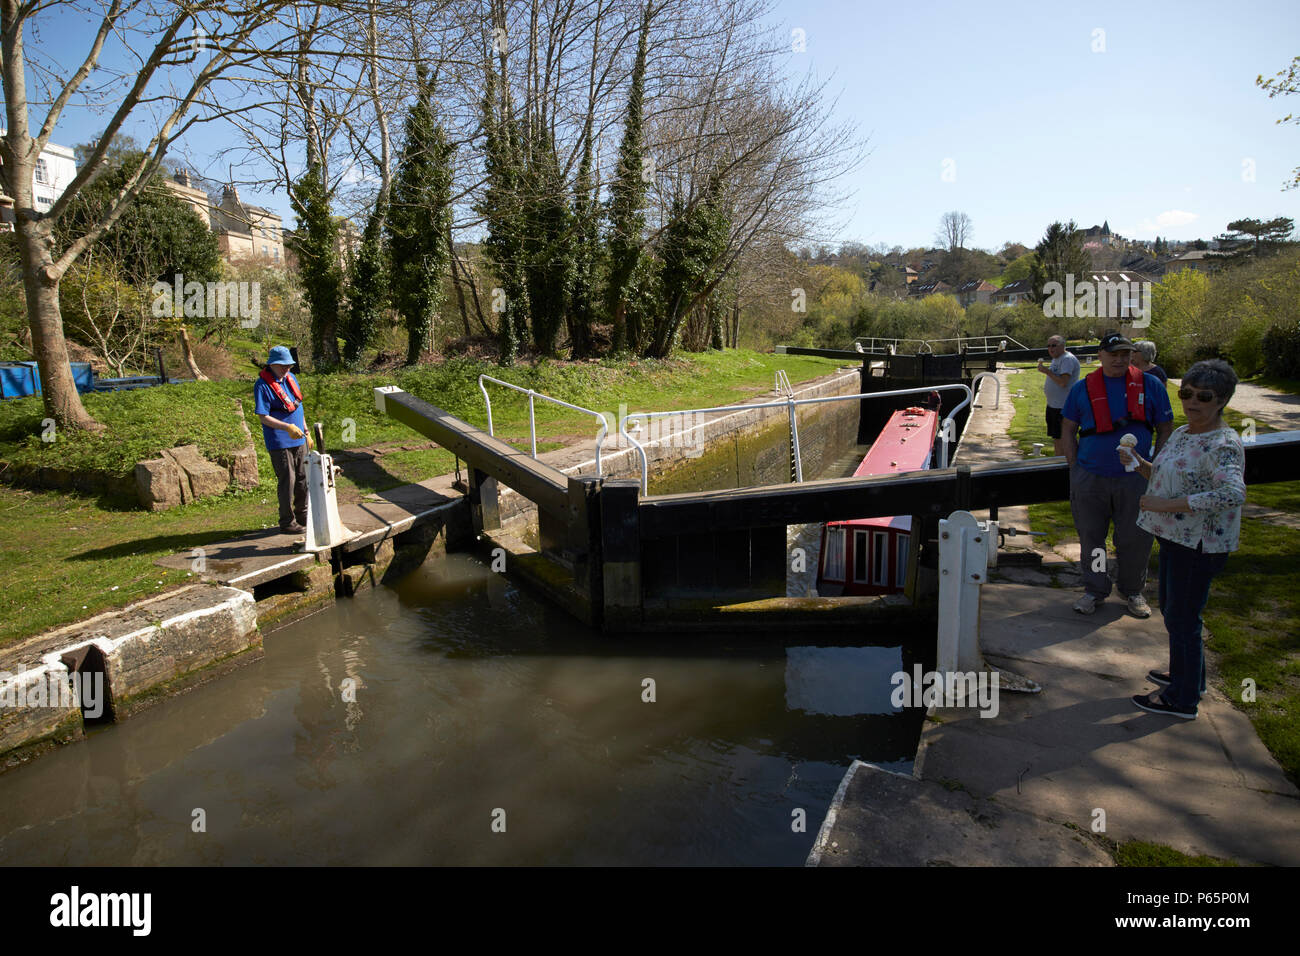 boaters working lock with narrowboat in number 12 lock as it floods with boat rising Kennet and Avon Canal Bath England UK - Stock Image